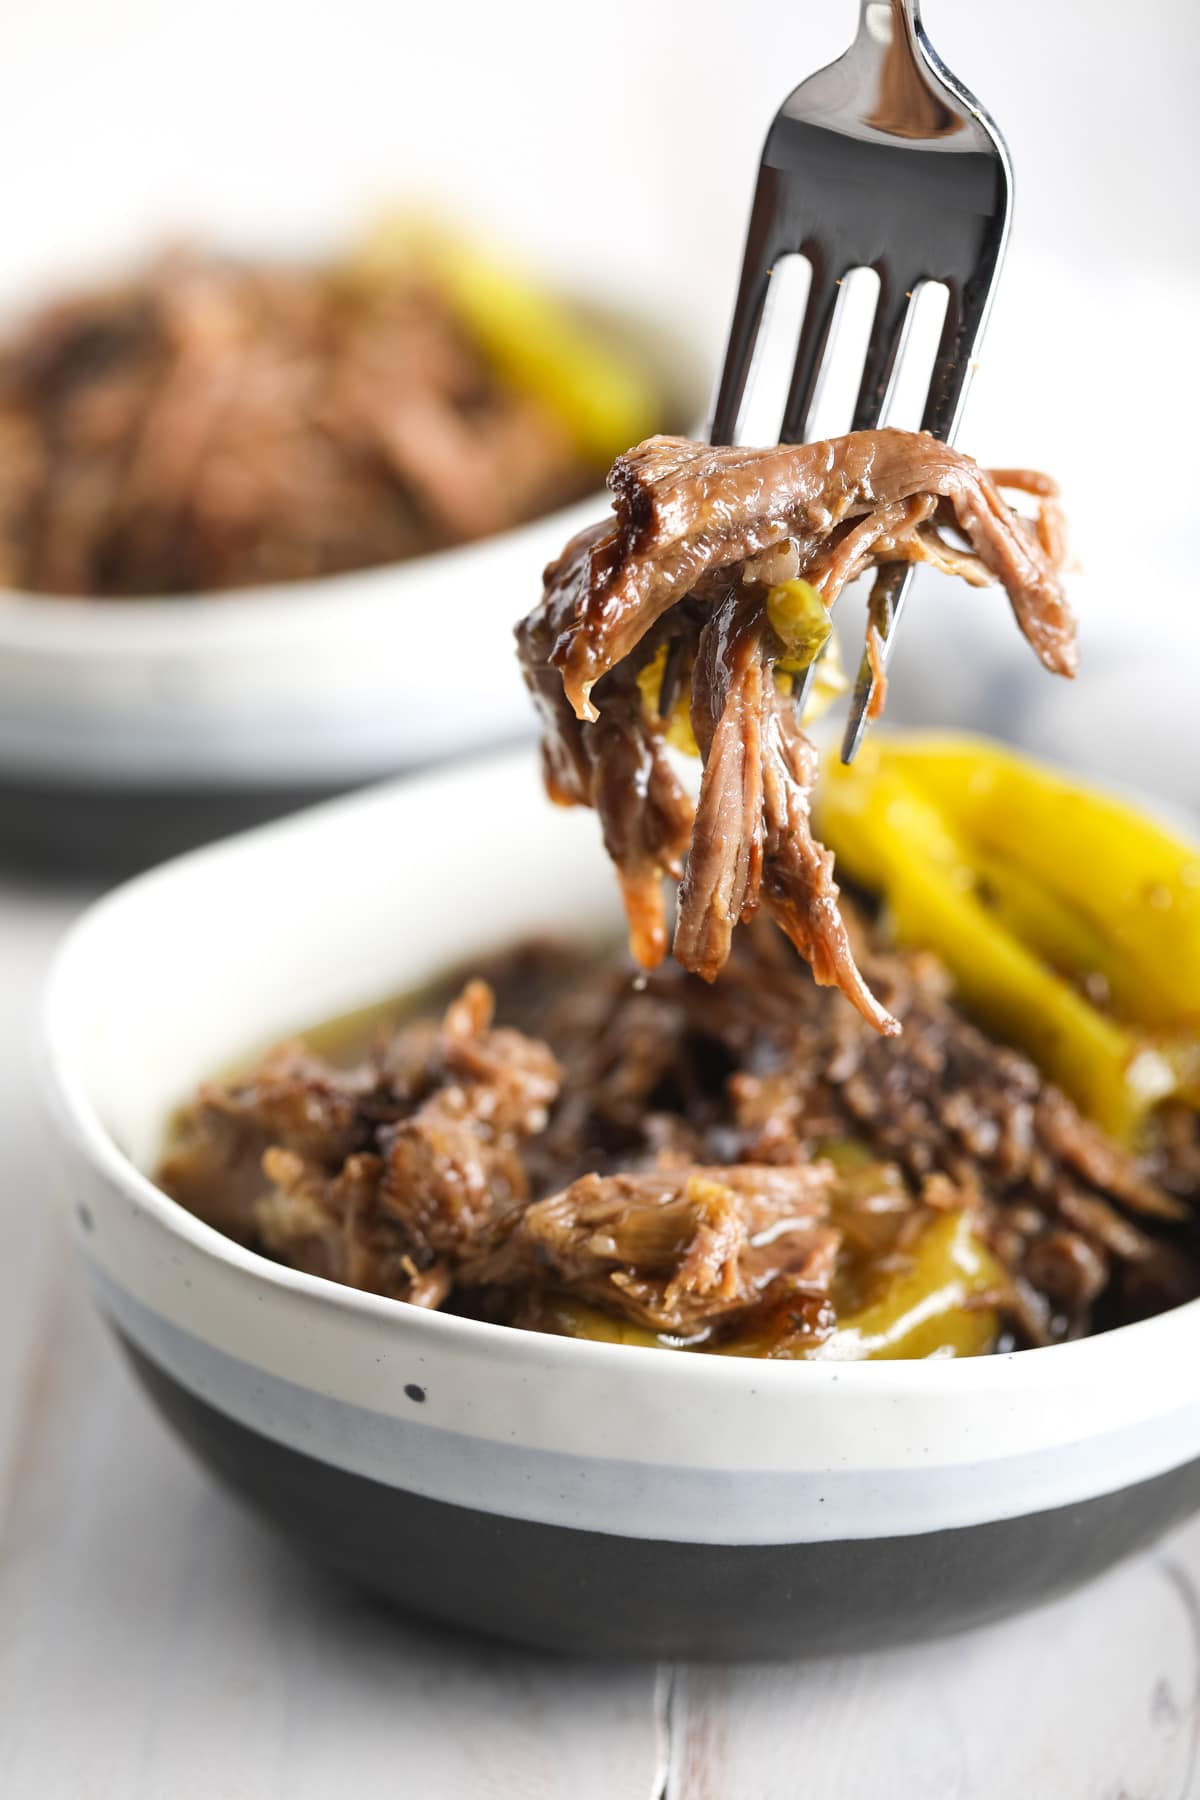 Instant Pot Italian Beef Recipe #ASpicyPerspective #pressurecooker #keto #lowcarb #paleo